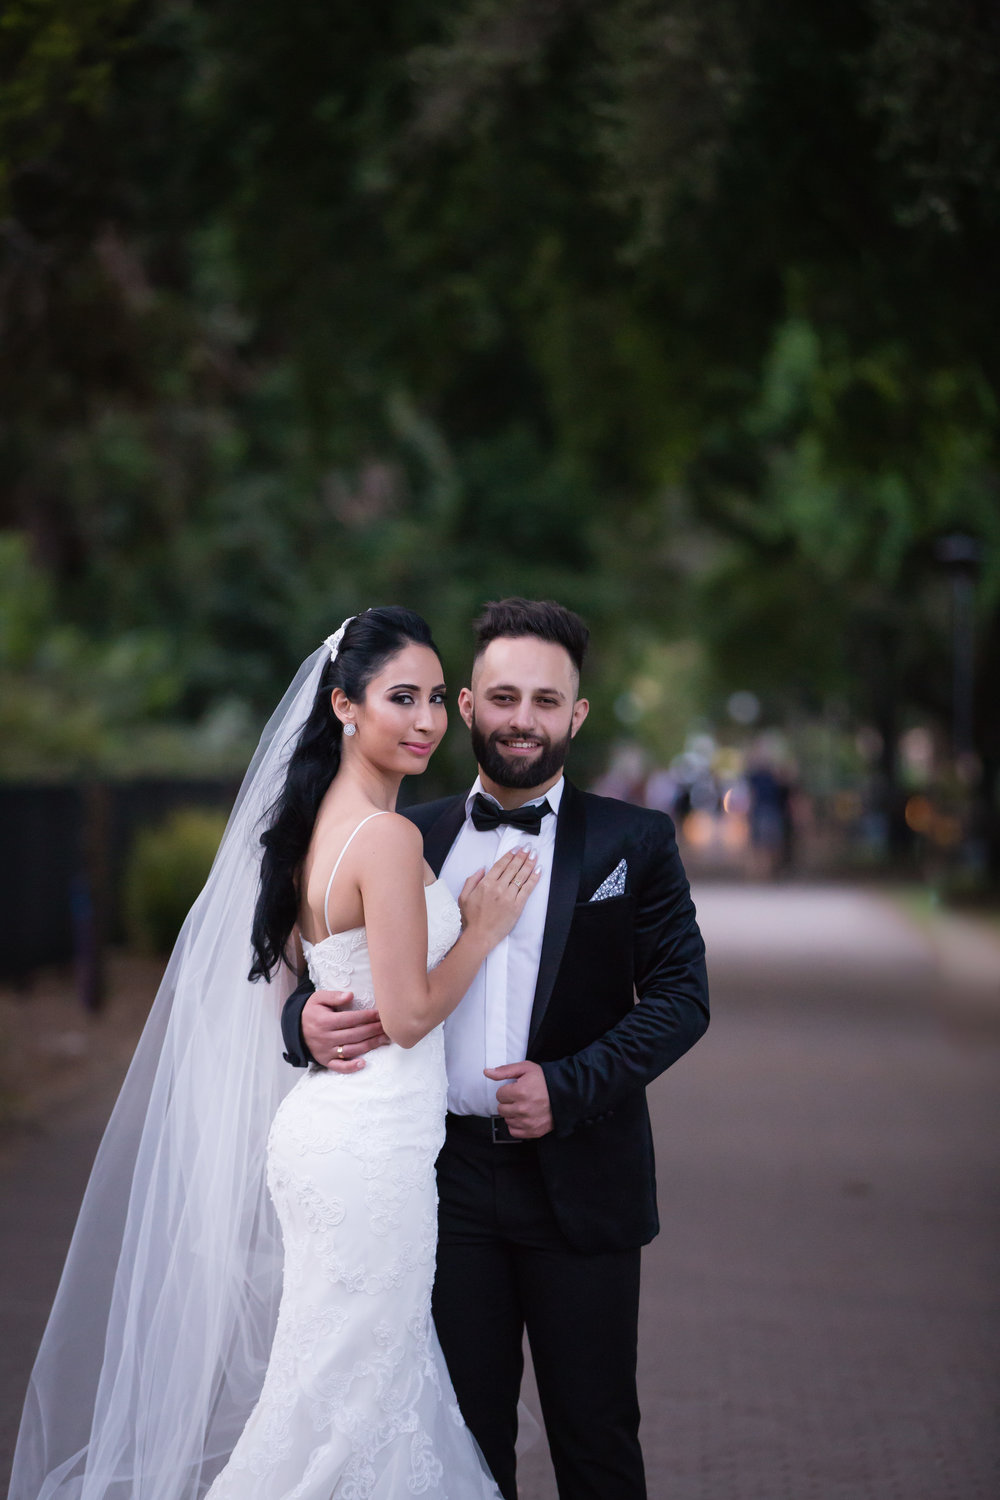 Brisbane wedding photographer - Raw Design Media